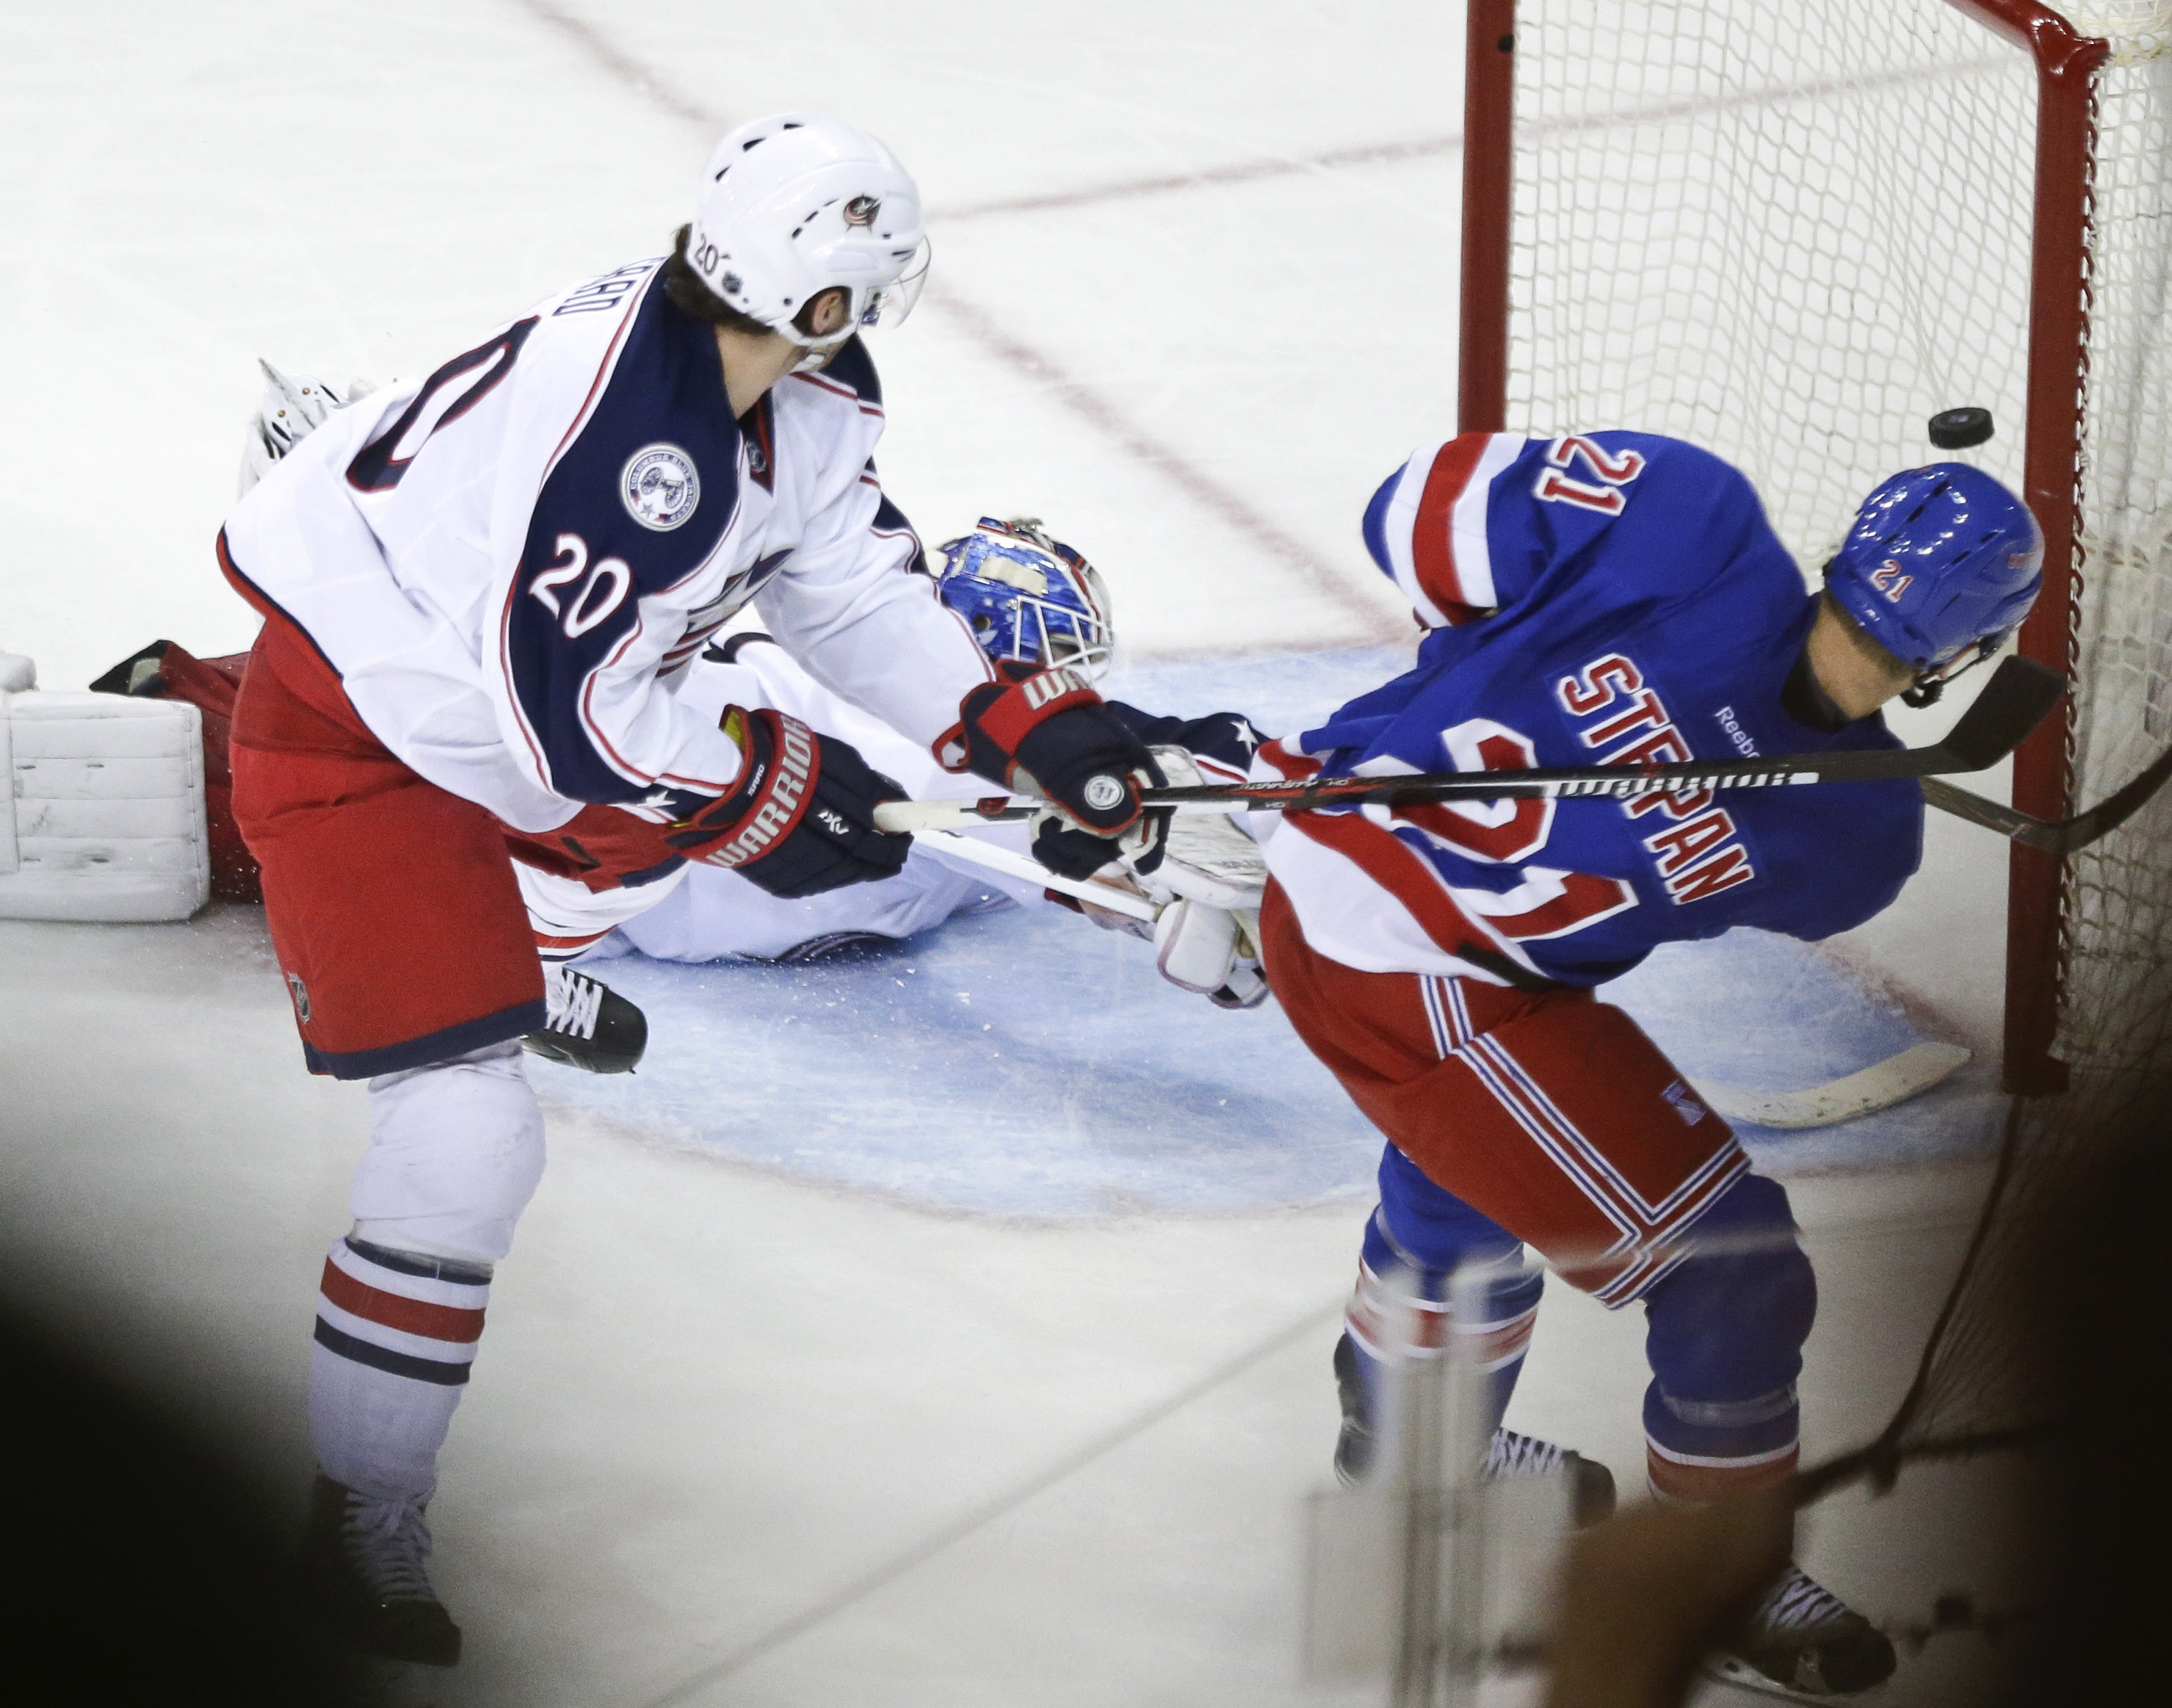 New York Rangers' Derek Stepan (21) shoots the puck past Columbus Blue Jackets goalie Joonas Korpisalo to score the game winning goal during the third period of an NHL hockey game Monday, Feb. 29, 2016, in New York. The Rangers won 2-1.(AP Photo/Frank Fra